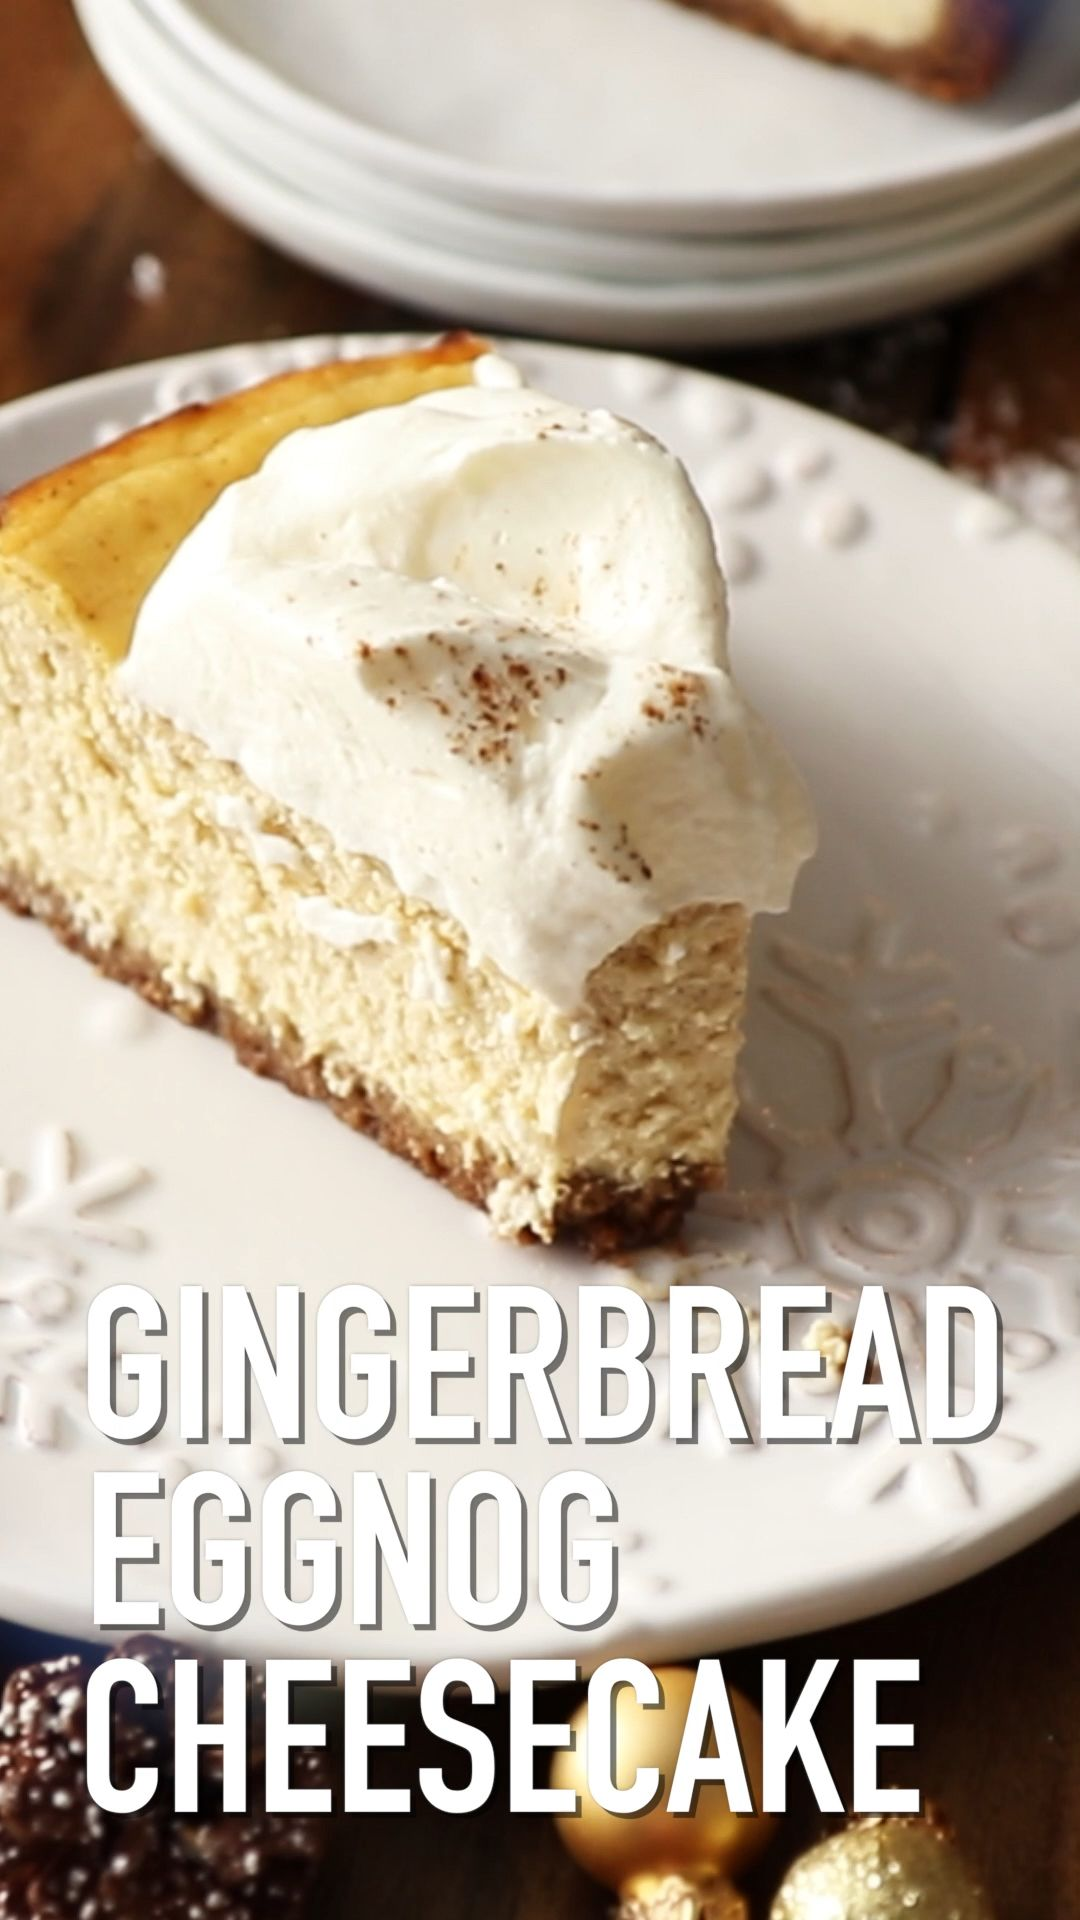 Eggnog Cheesecake with Gingerbread Crust | Also The Crumbs Please